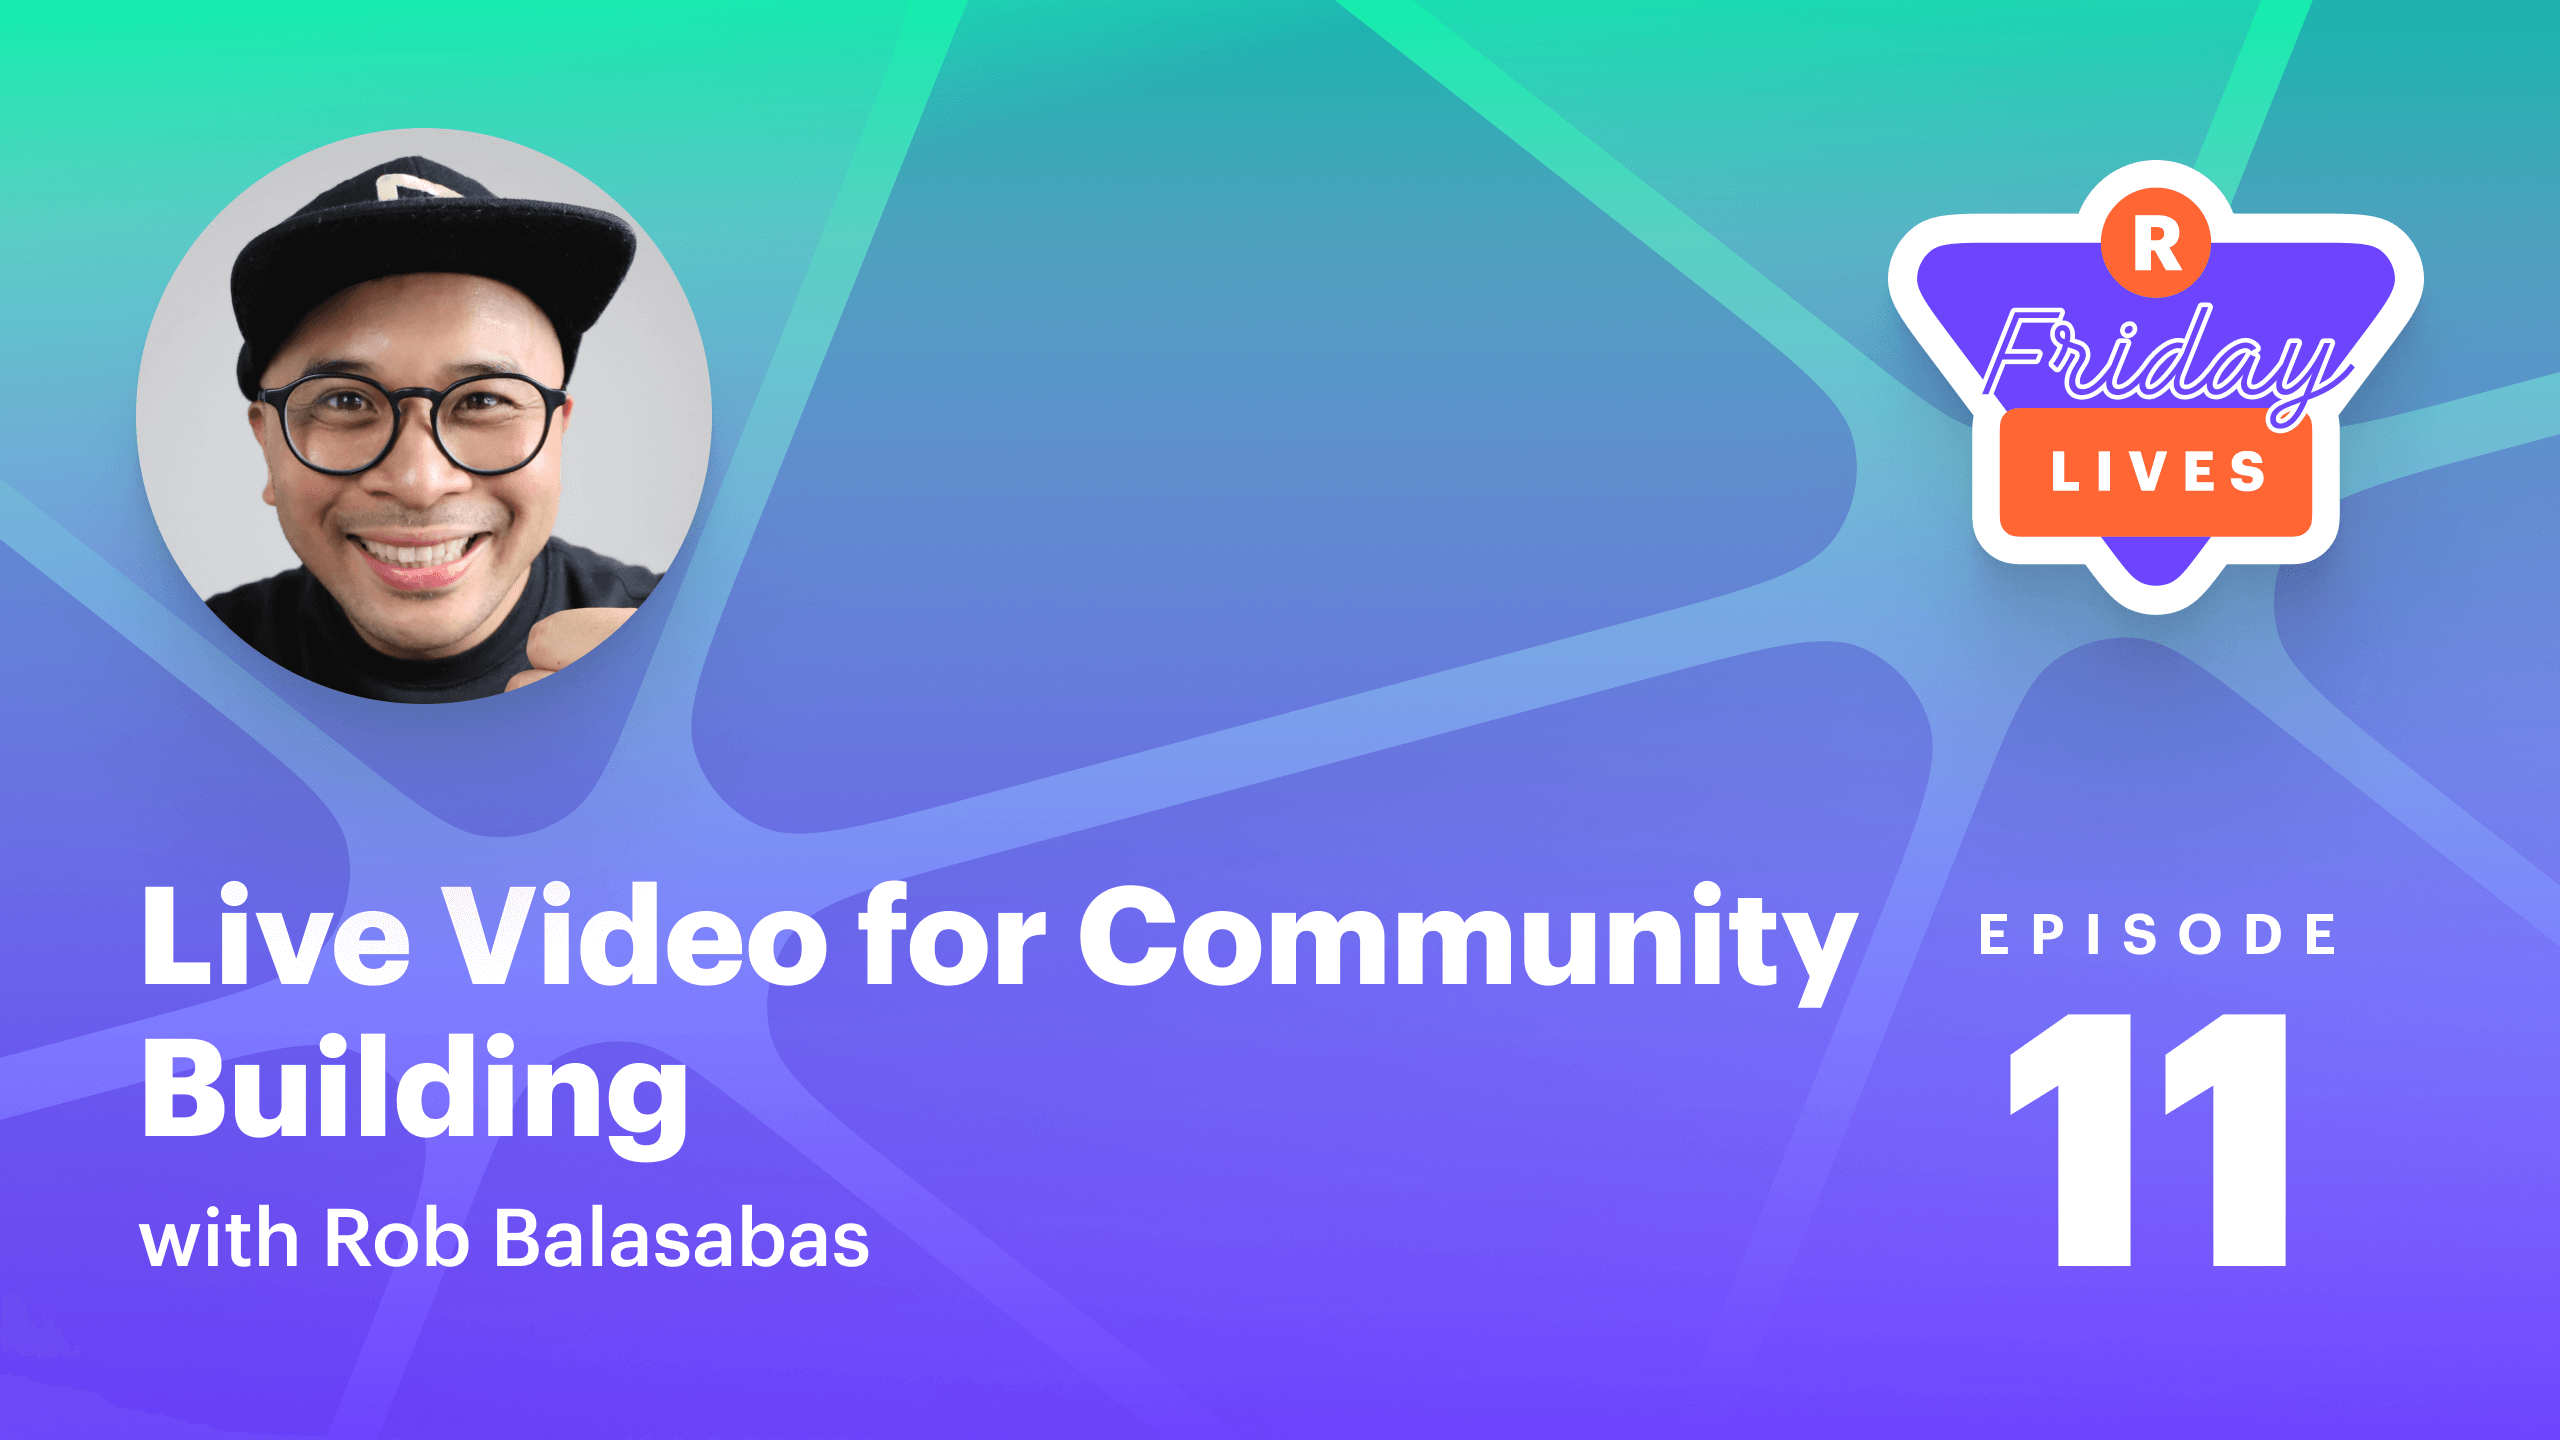 Community building with live streaming